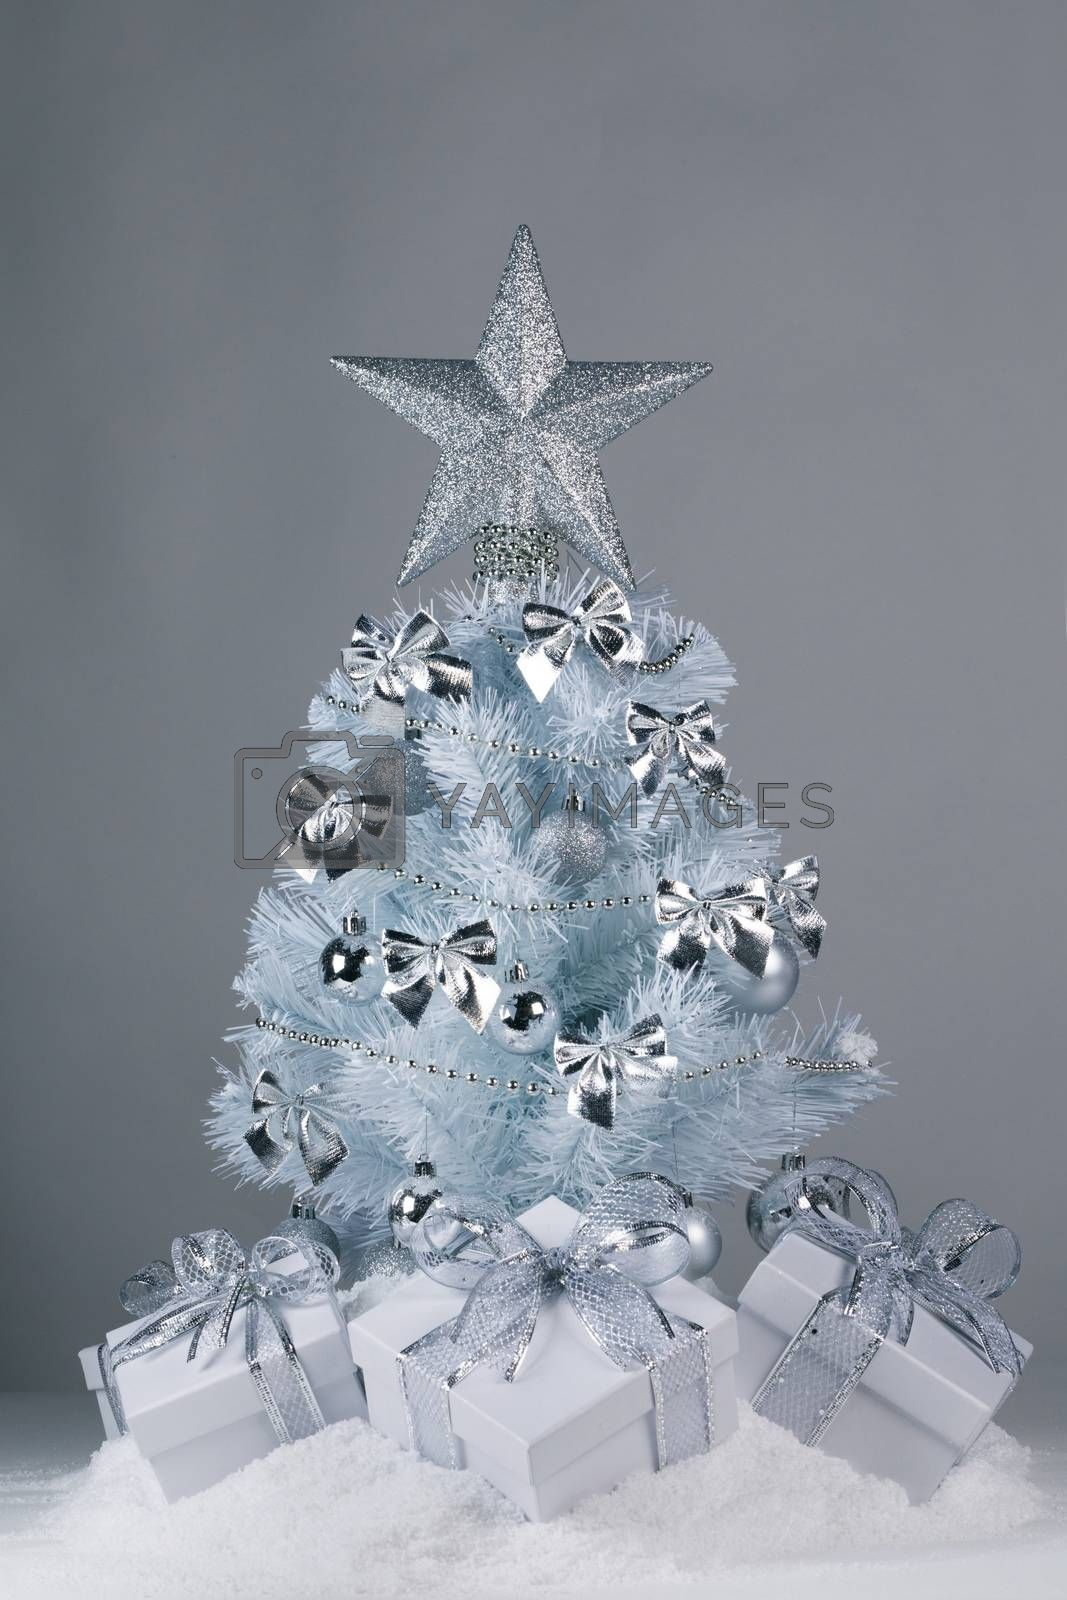 White christmas tree with silver decorations and gifts on snow on gray background